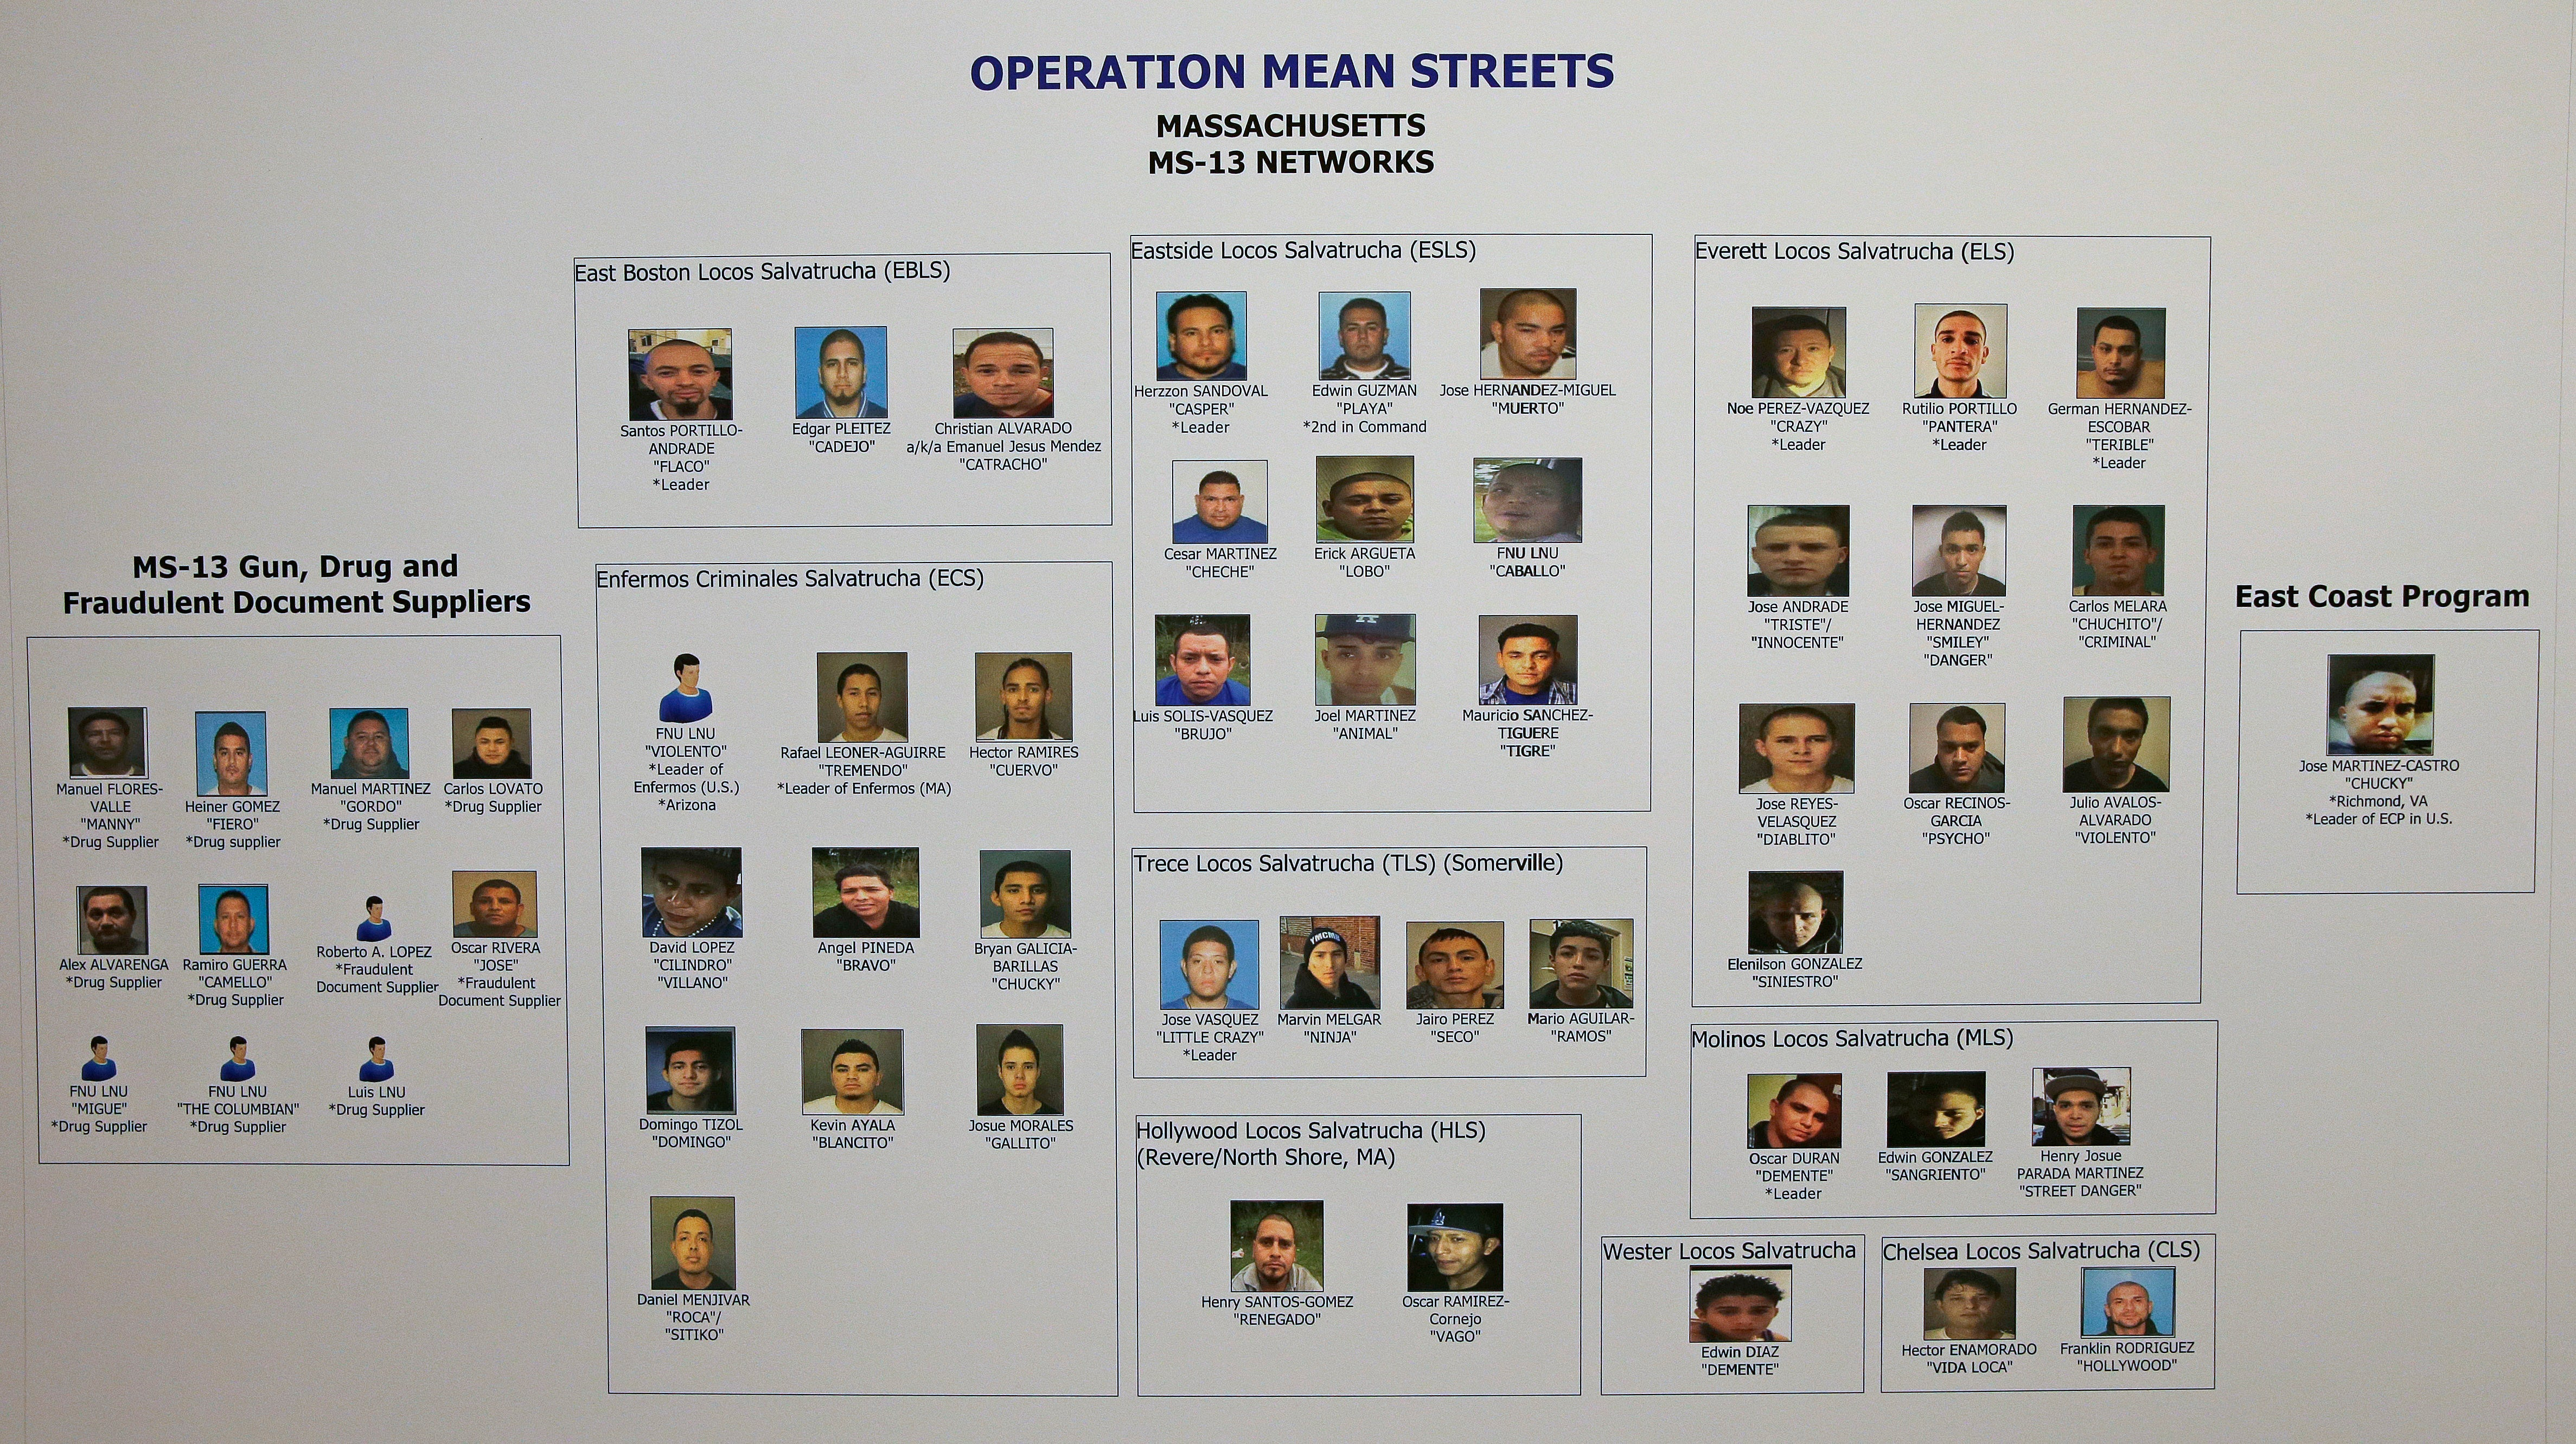 An array of head shots of more than 50 alleged gang members is displayed during a news conference at the U.S. Attorney's office in Boston, Friday, Jan. 29, 2016. Authorities say they have charged over 50 members of the MS-13 gang in and around Boston. The gang is notoriously violent and known for using machetes to kill victims. Nearly 40 members of the gang were arrested on Friday morning, according to officials.